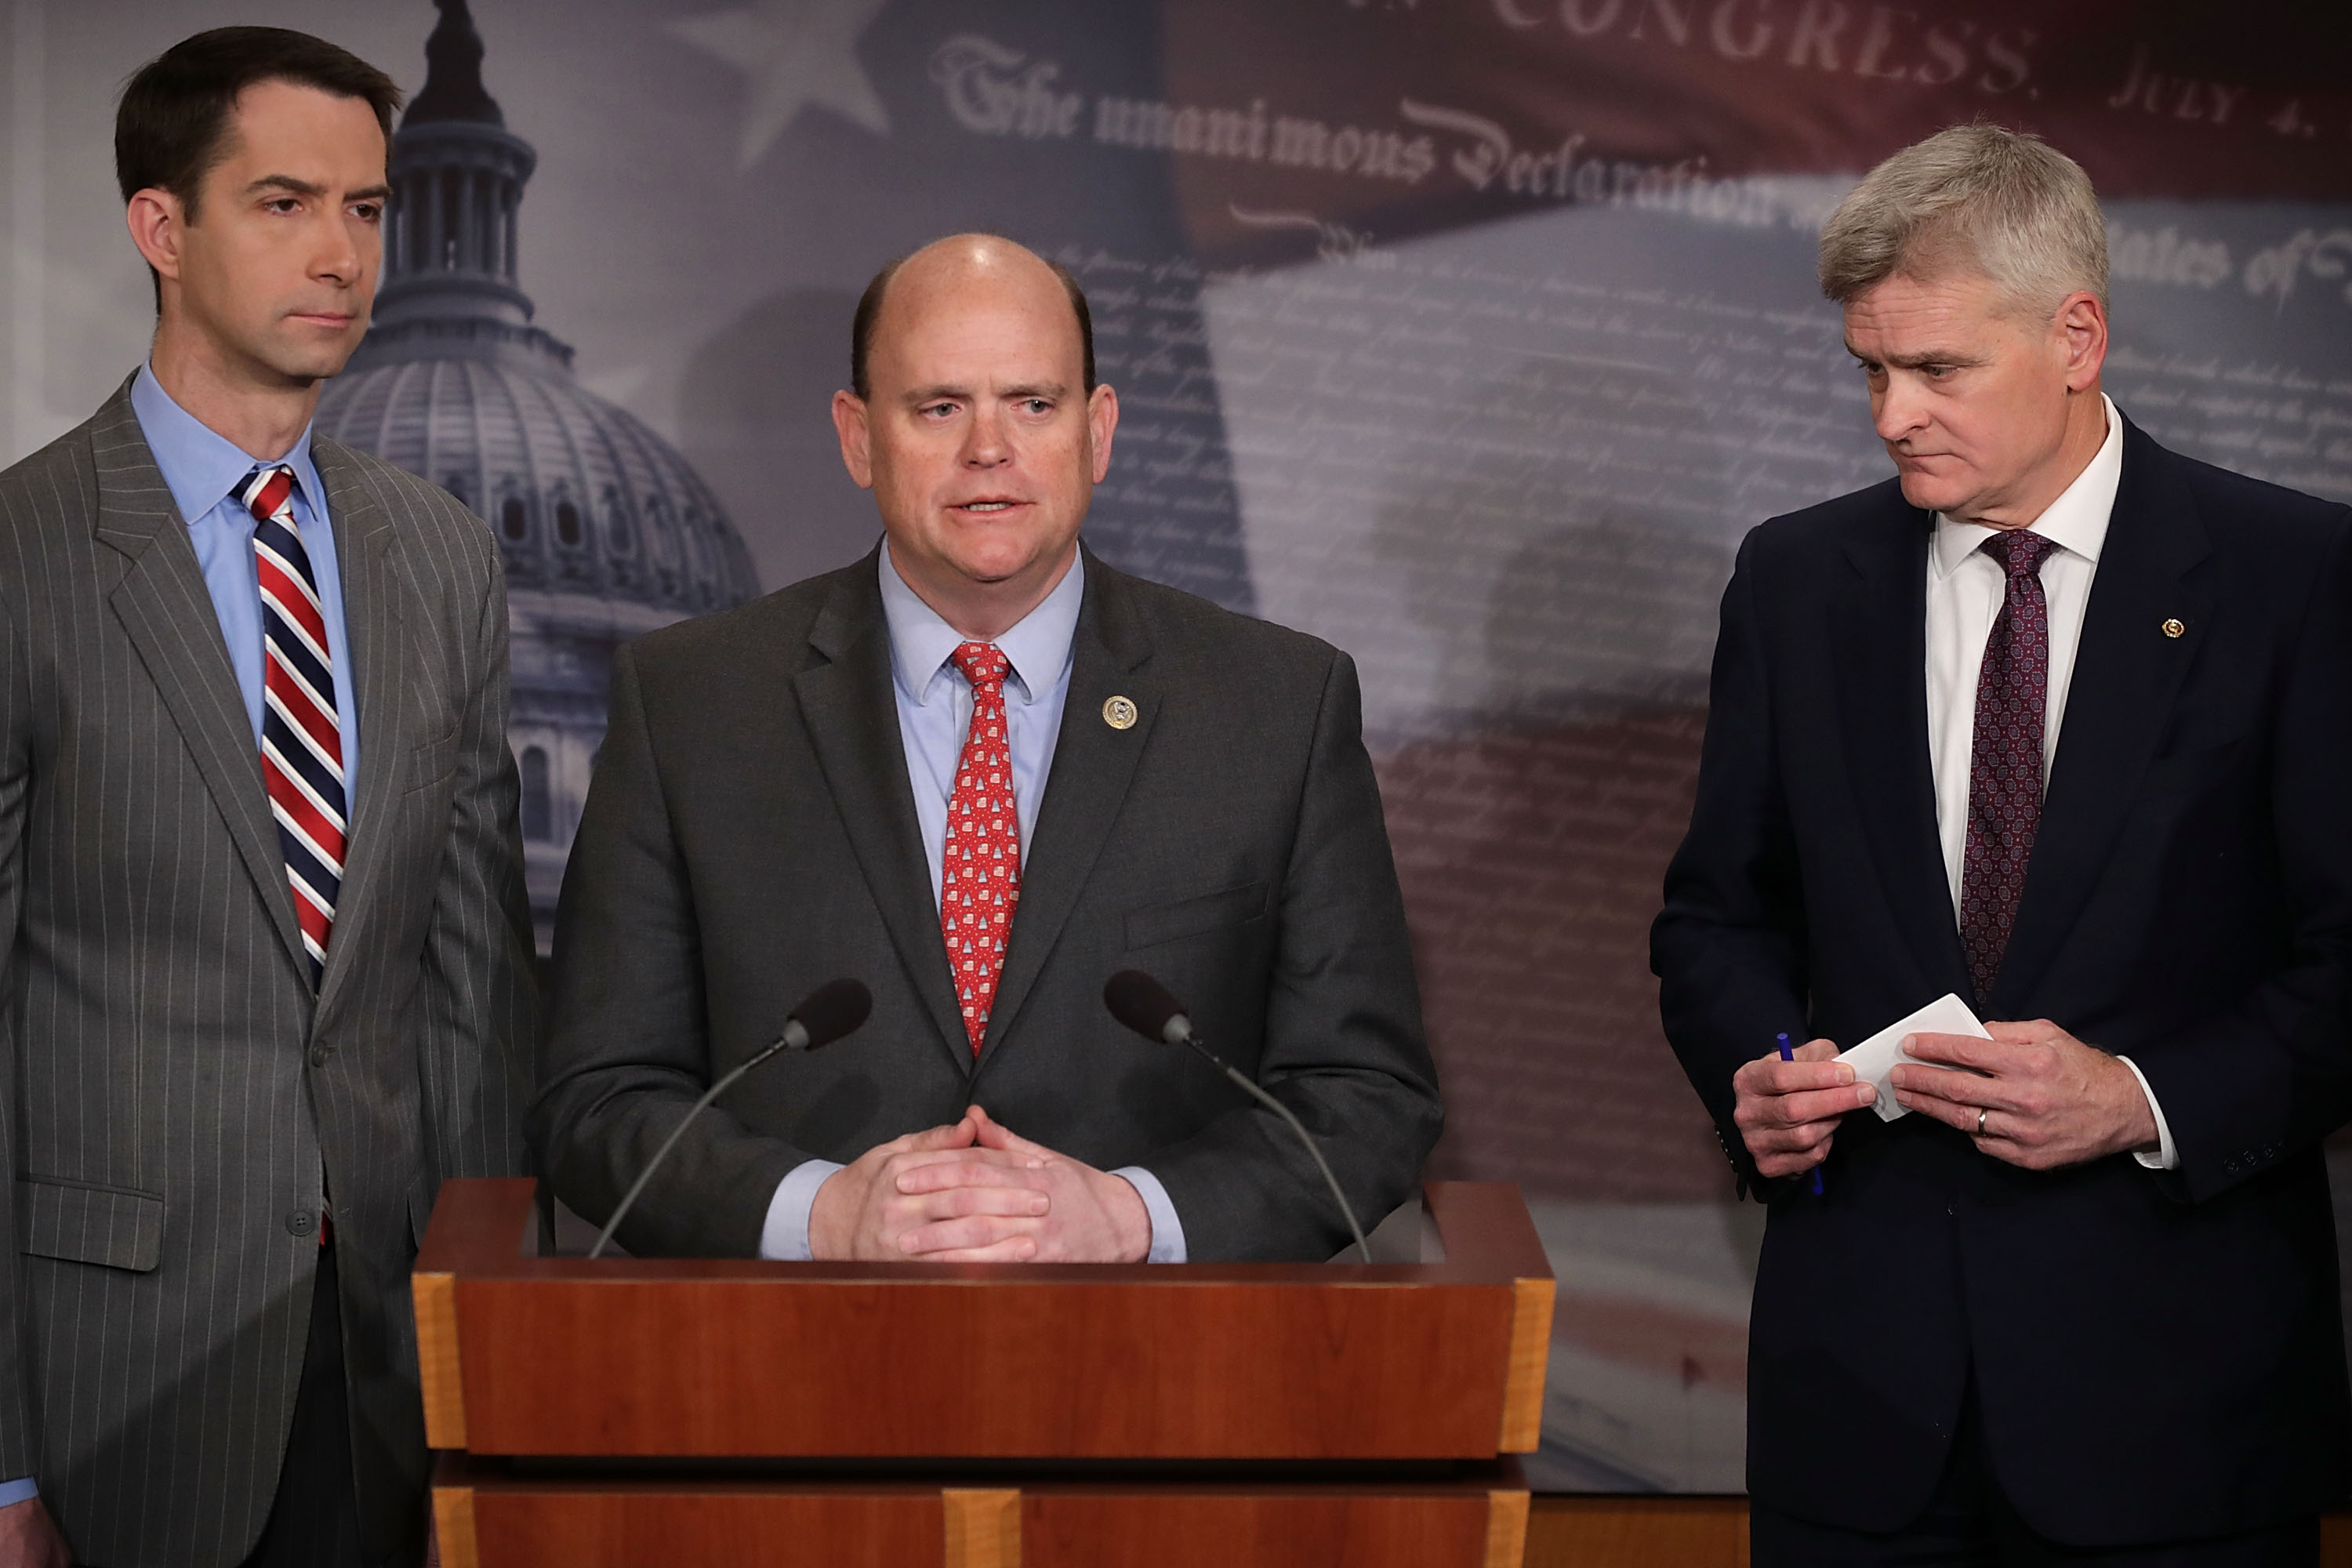 U.S. Rep. Tom Reed (R-NY) (C) speaks to reporters during a news conference with Sens. Tom Cotton (R-AR) (L) and Bill Cassidy (R-LA) at the U.S. Capitol March 22, 2018 in Washington, DC. Chip Somodevilla/Getty Images